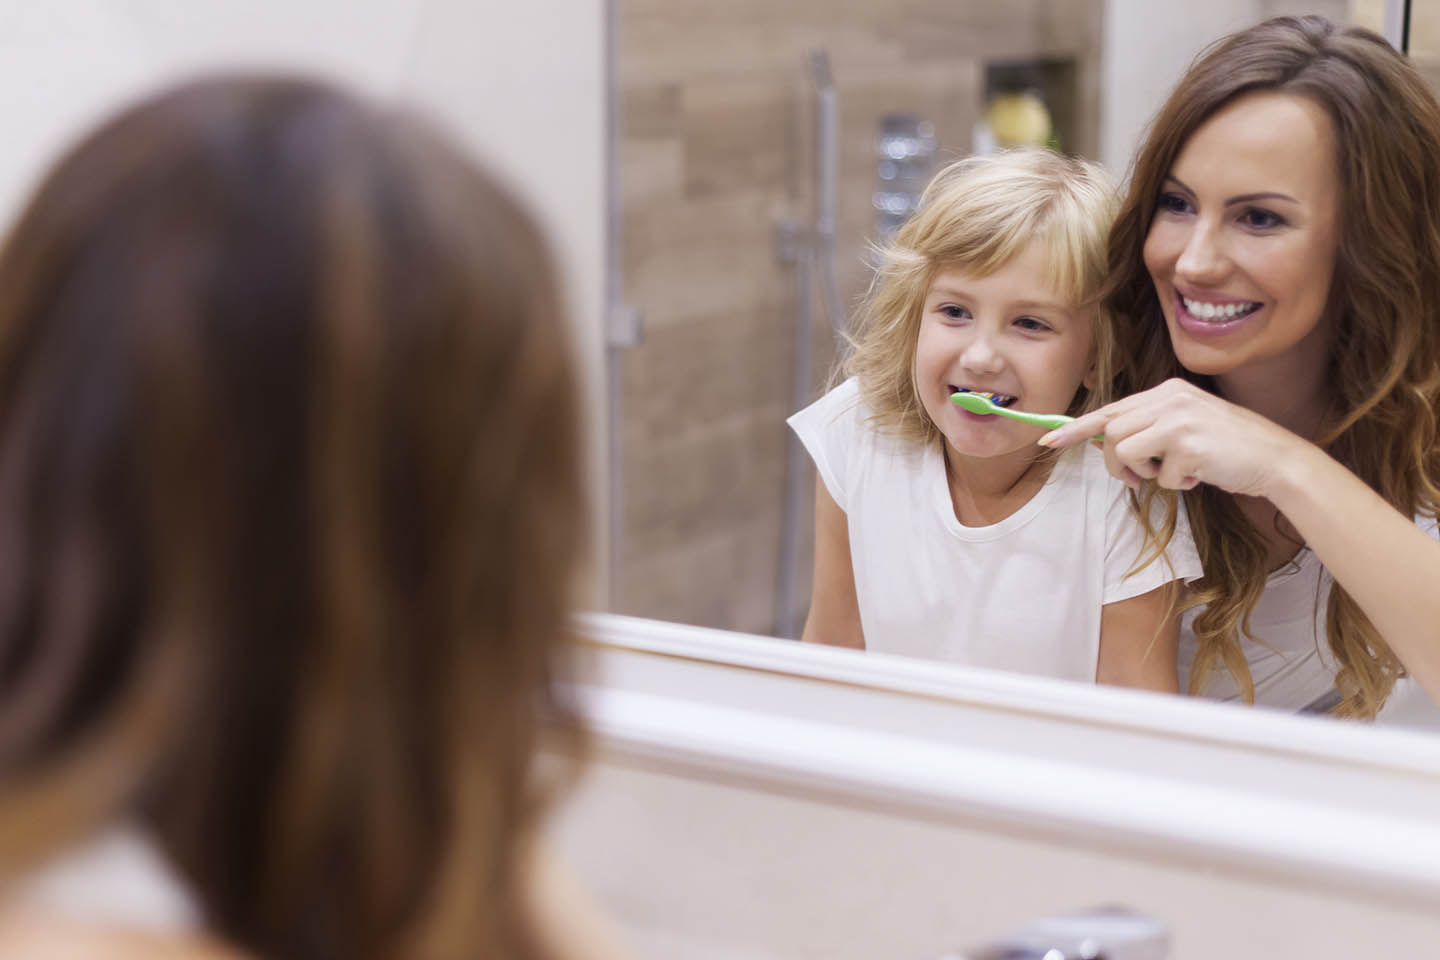 Little girl being helped to brush her teeth